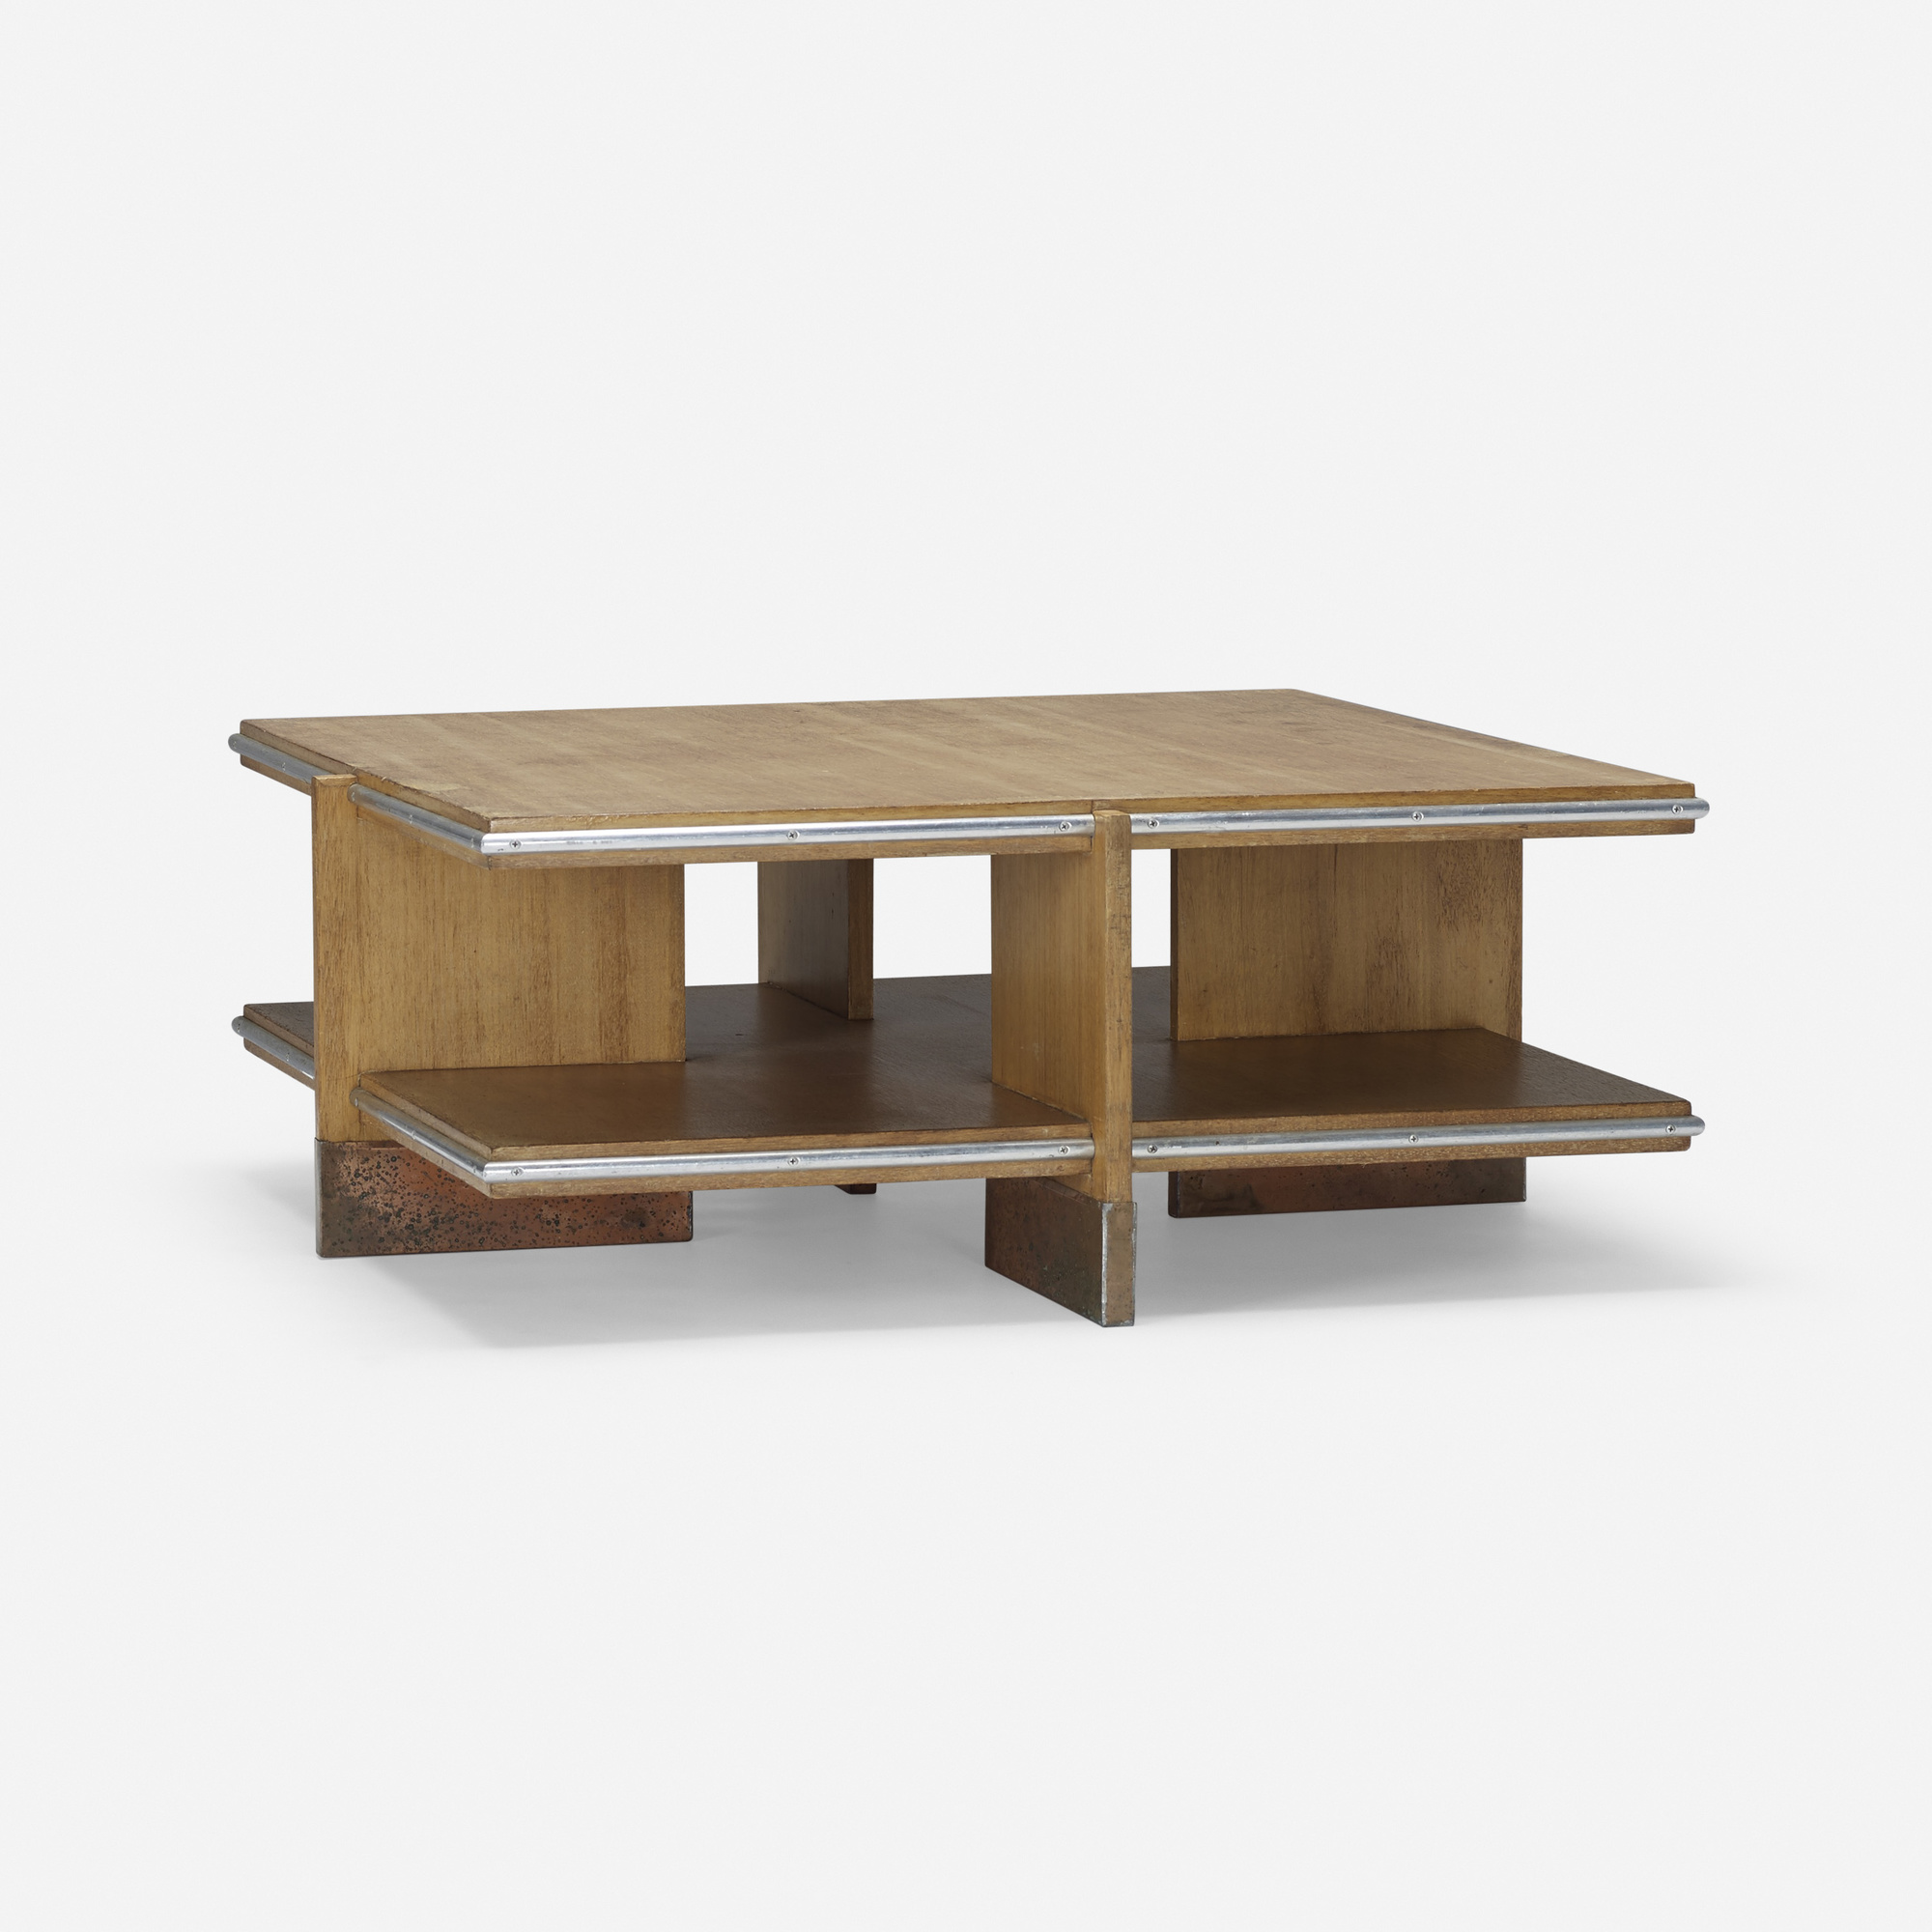 183 frank lloyd wright coffee table from price tower oklahoma